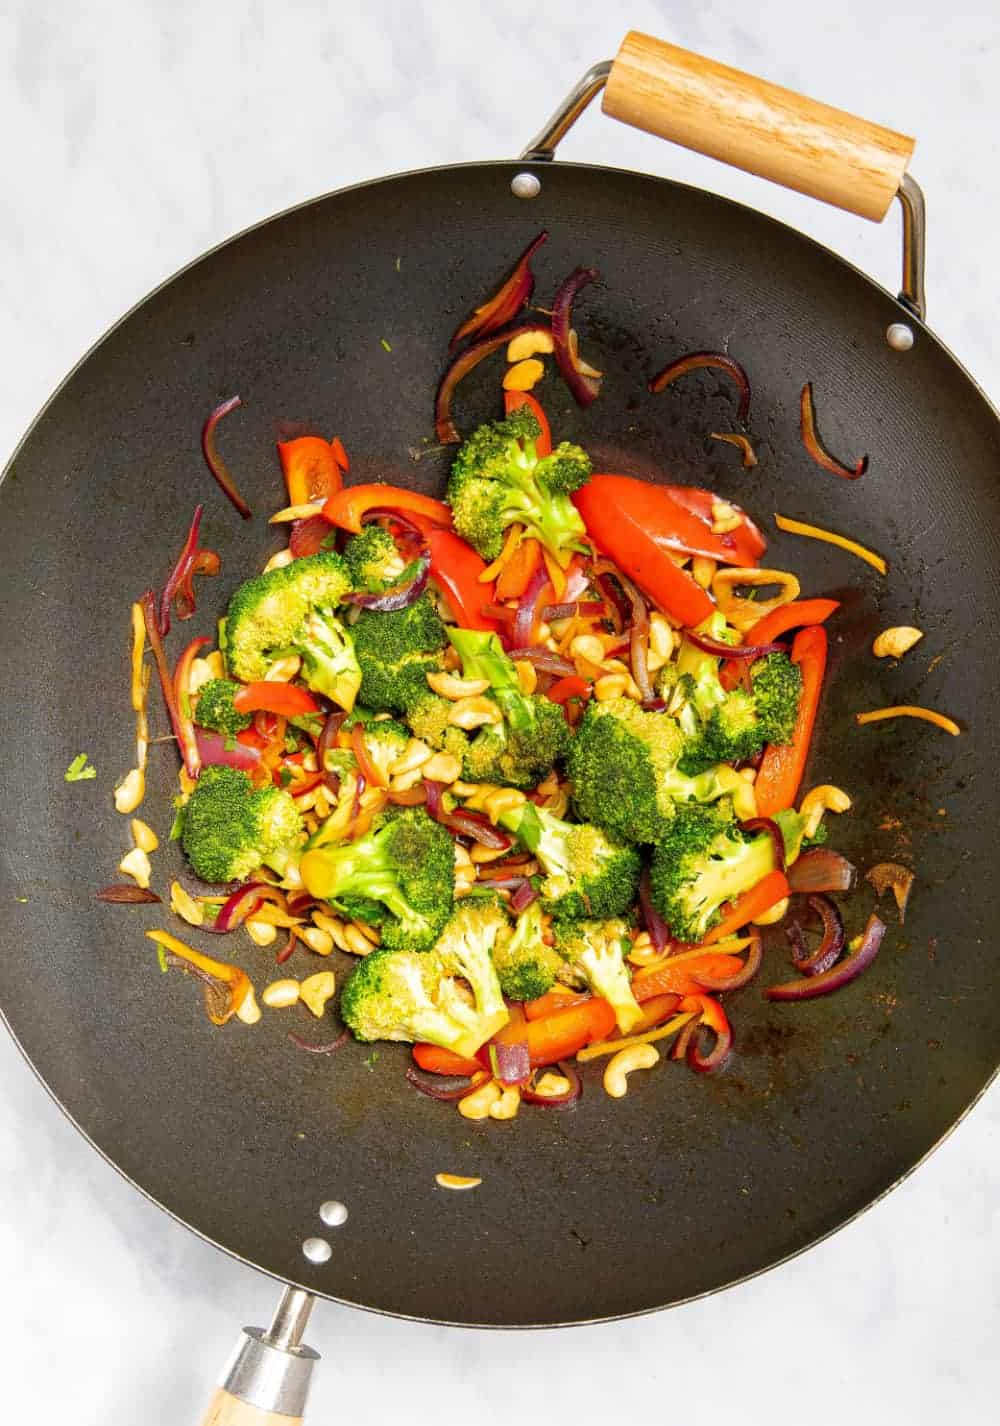 15 Minute Broccoli & Cashew Stir-Fry - Wok